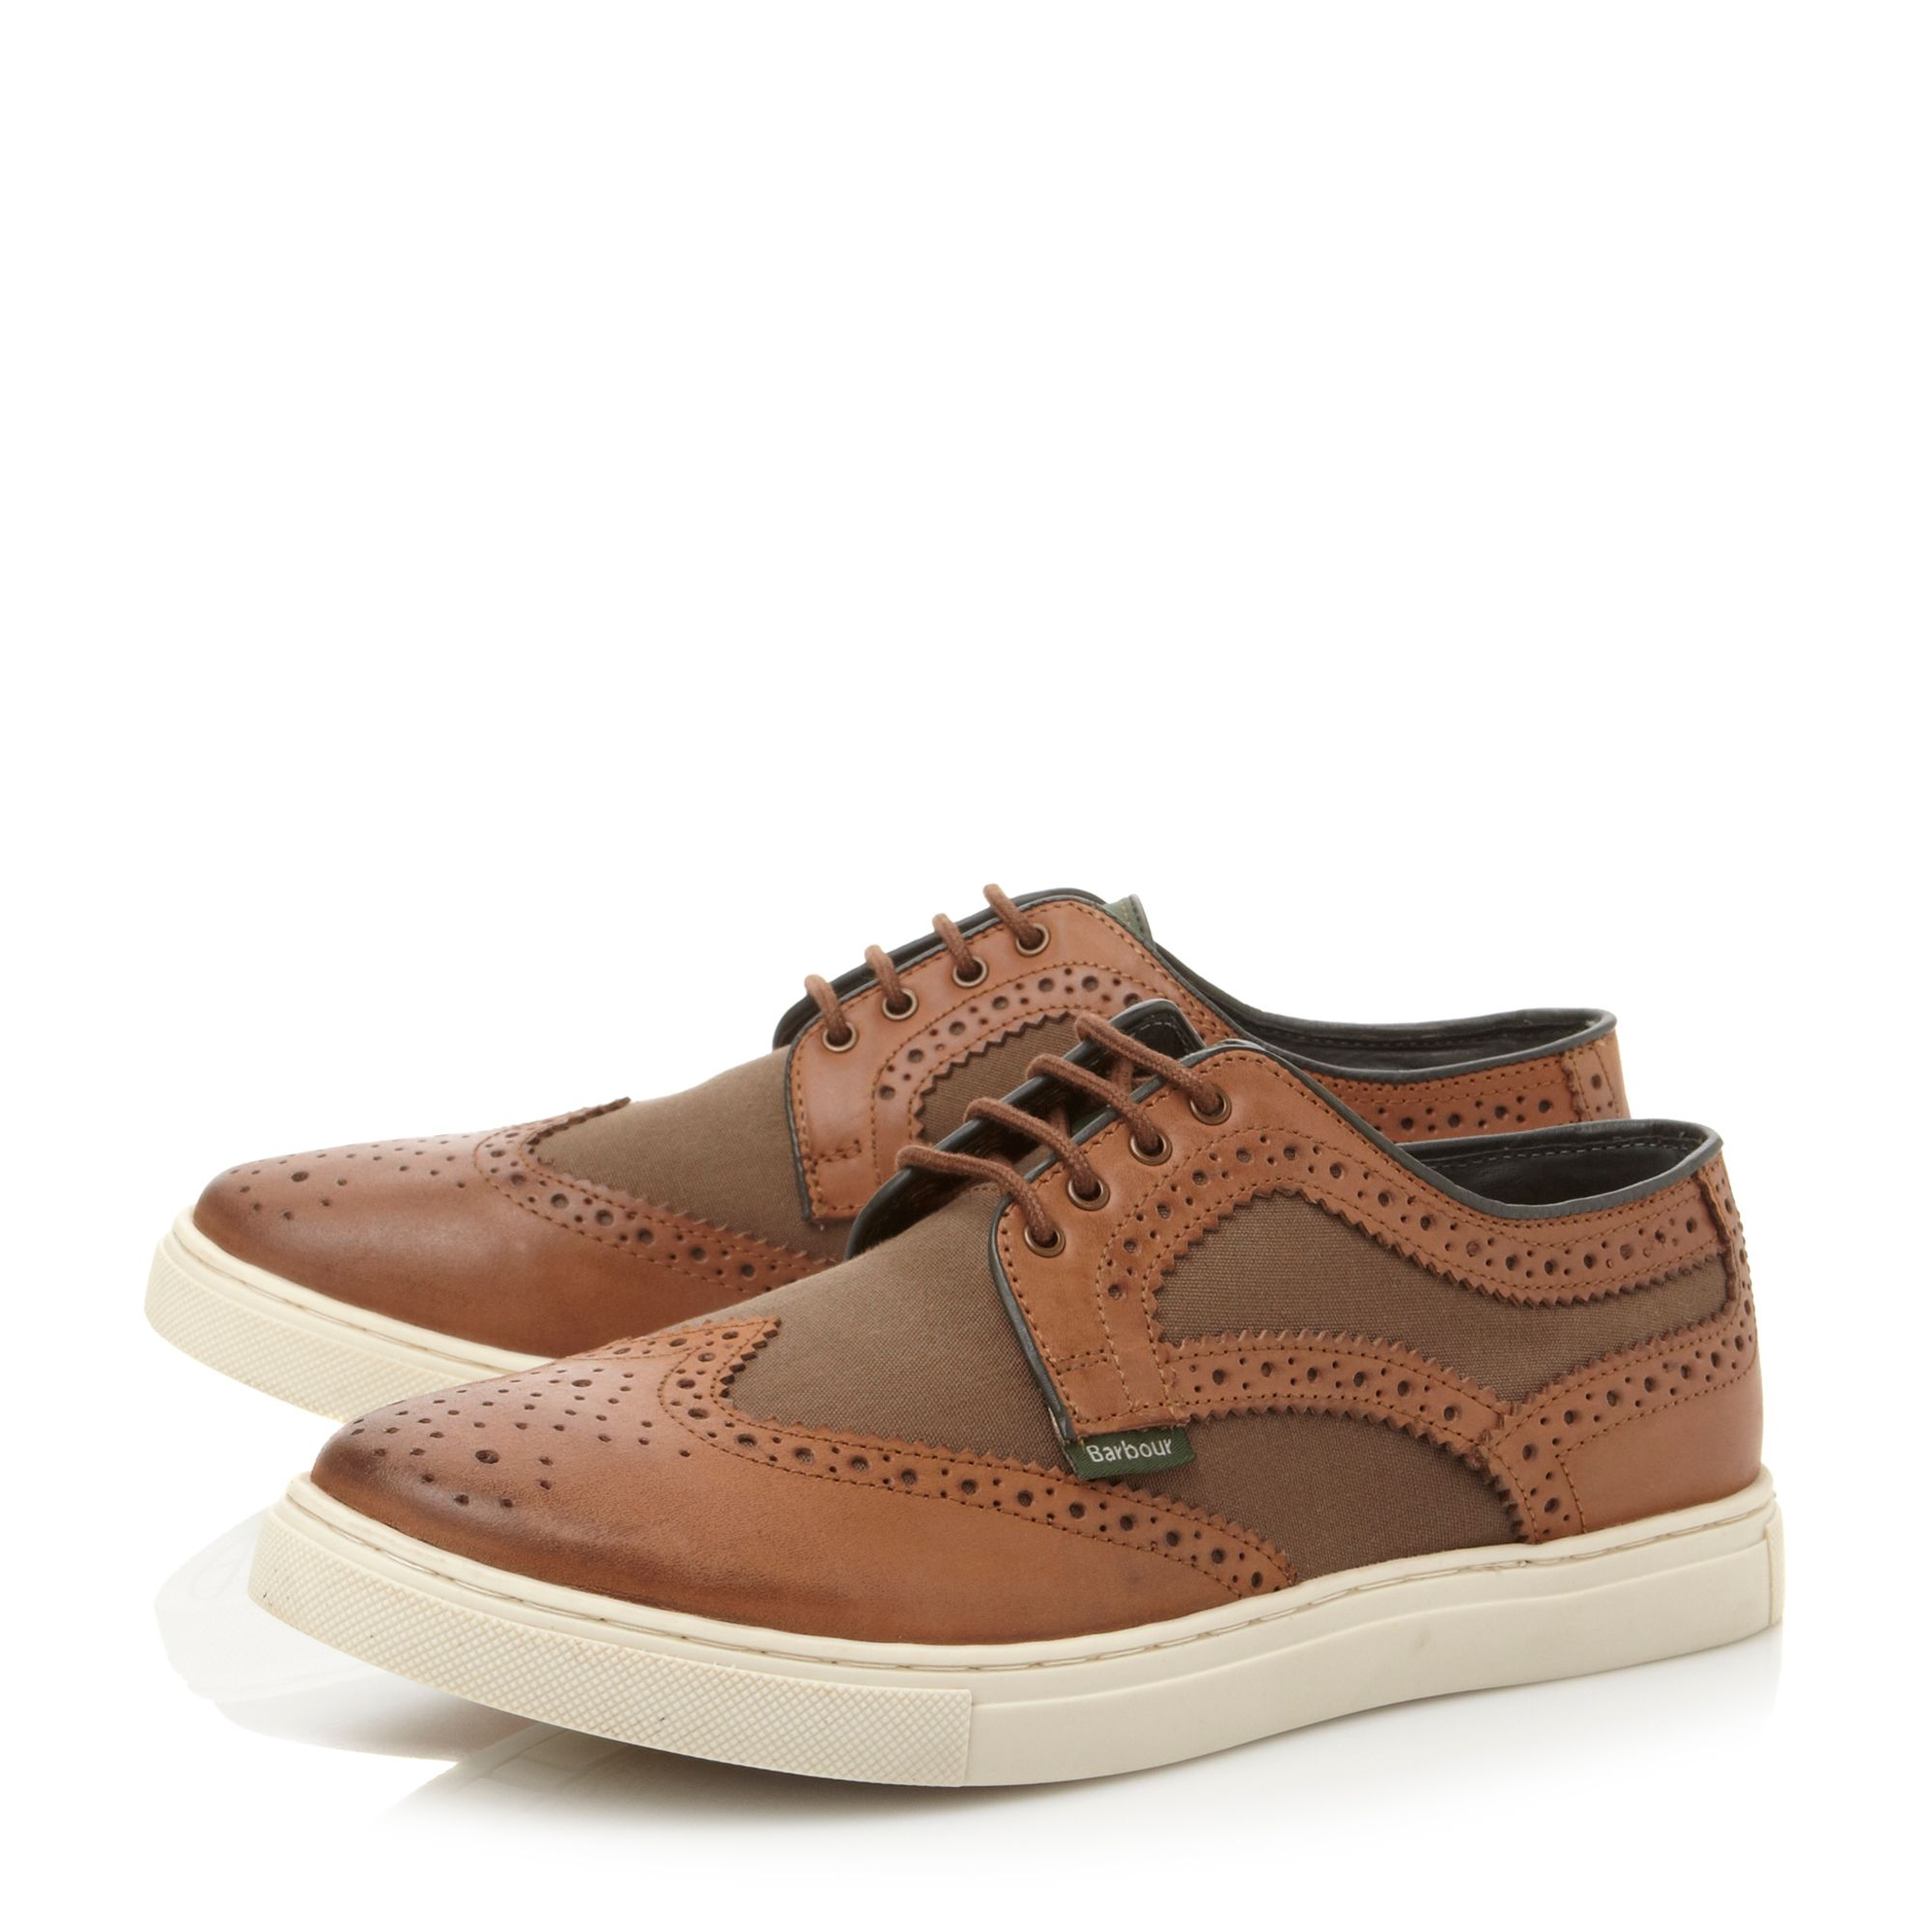 Flastaff lace up trainers